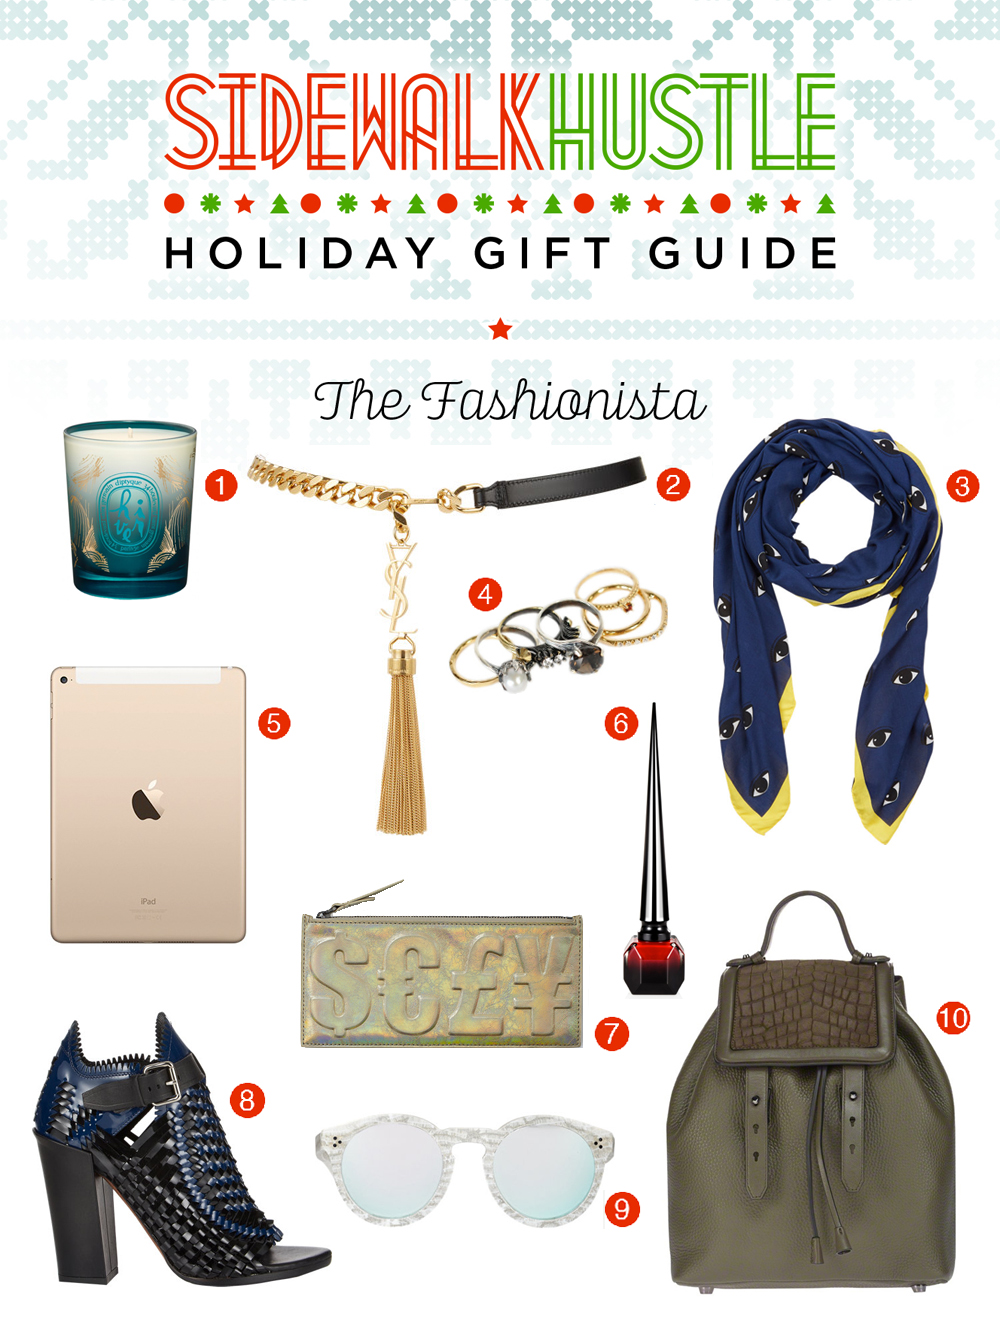 Sidewalk Hustle Holiday Gift Guide 2014 - Fashionista